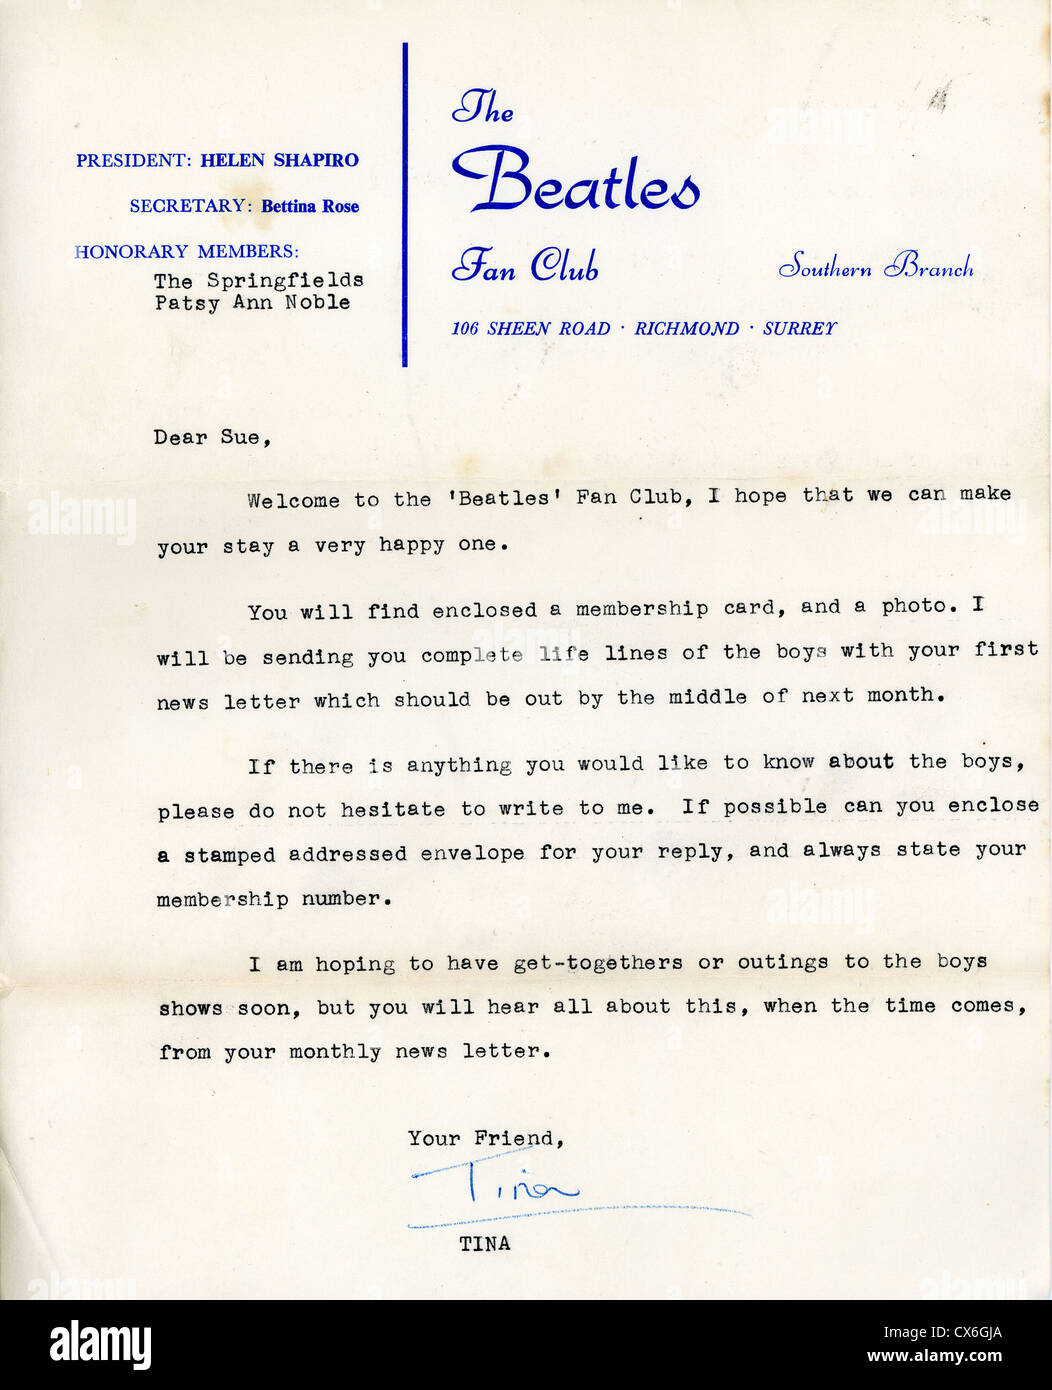 000650 - Official Beatles Fan Club 1963 Letter Signed By Bettina Rose - Stock Image